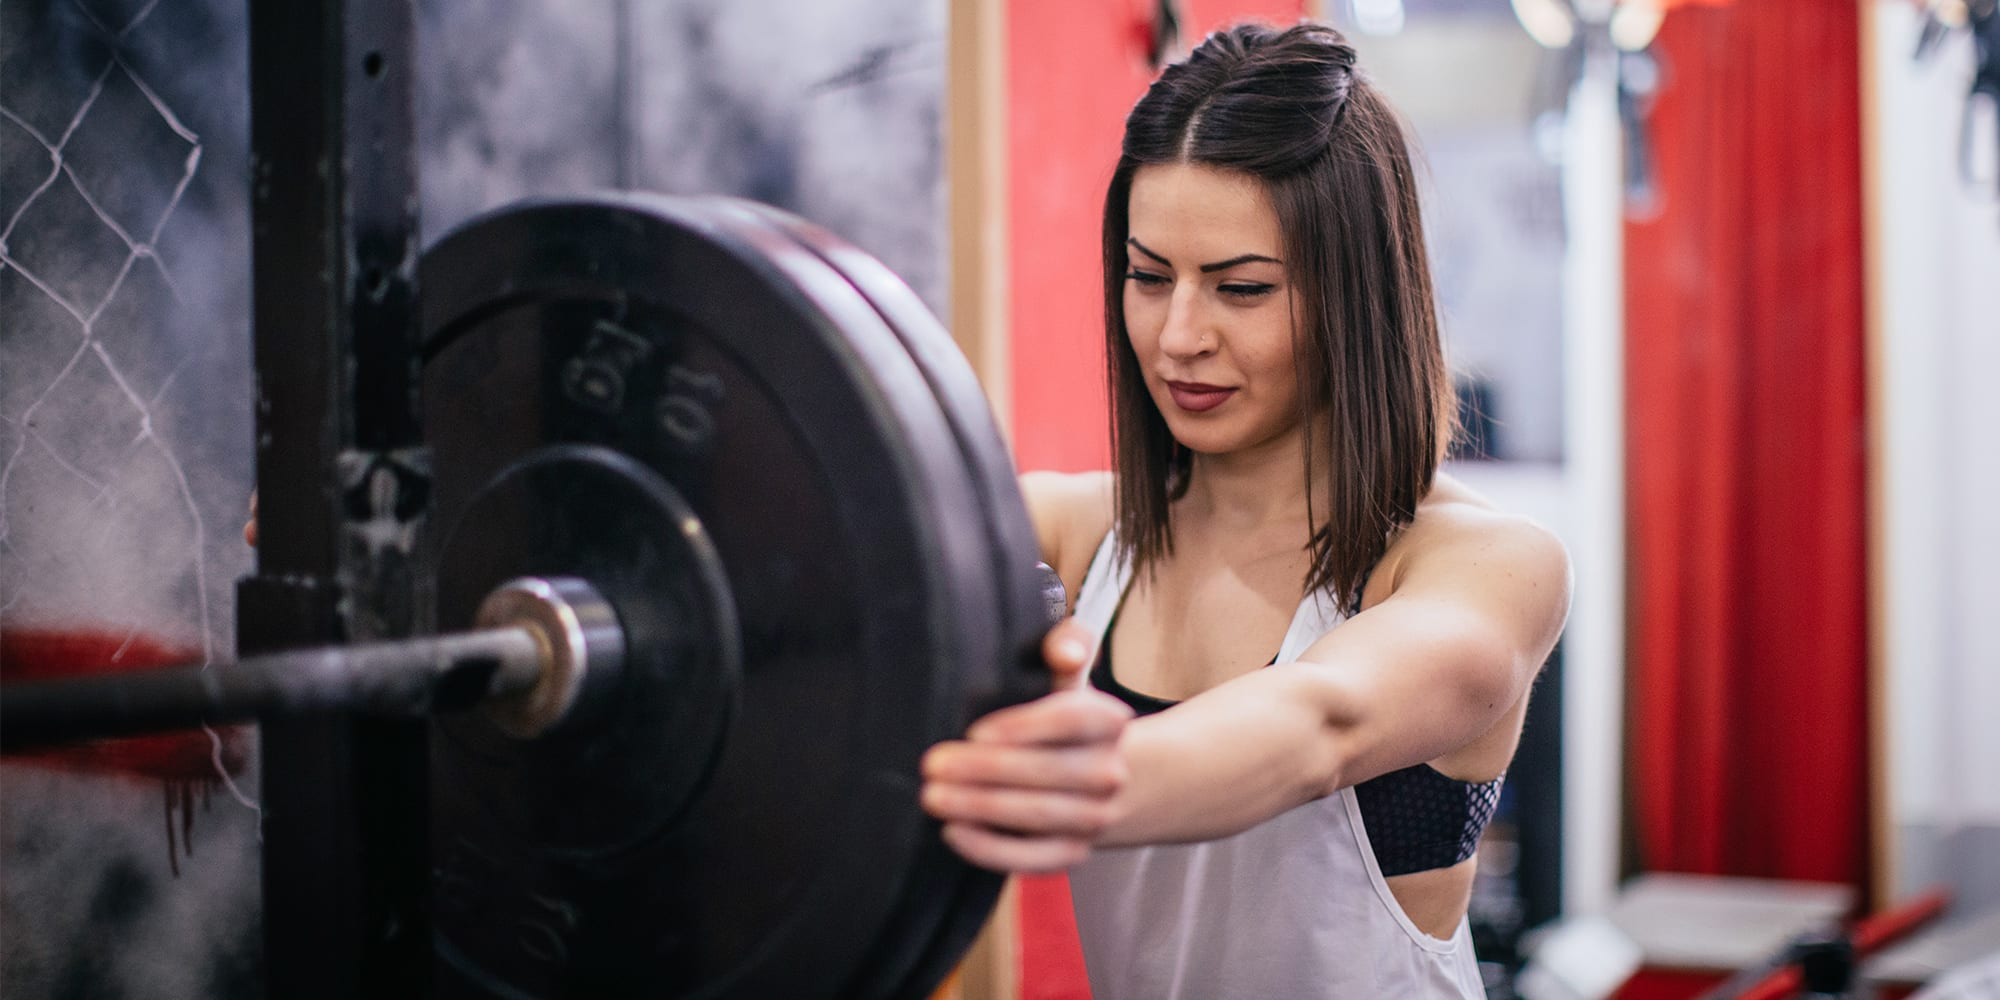 9 Reasons Why Weight Lifting Is Great for Women